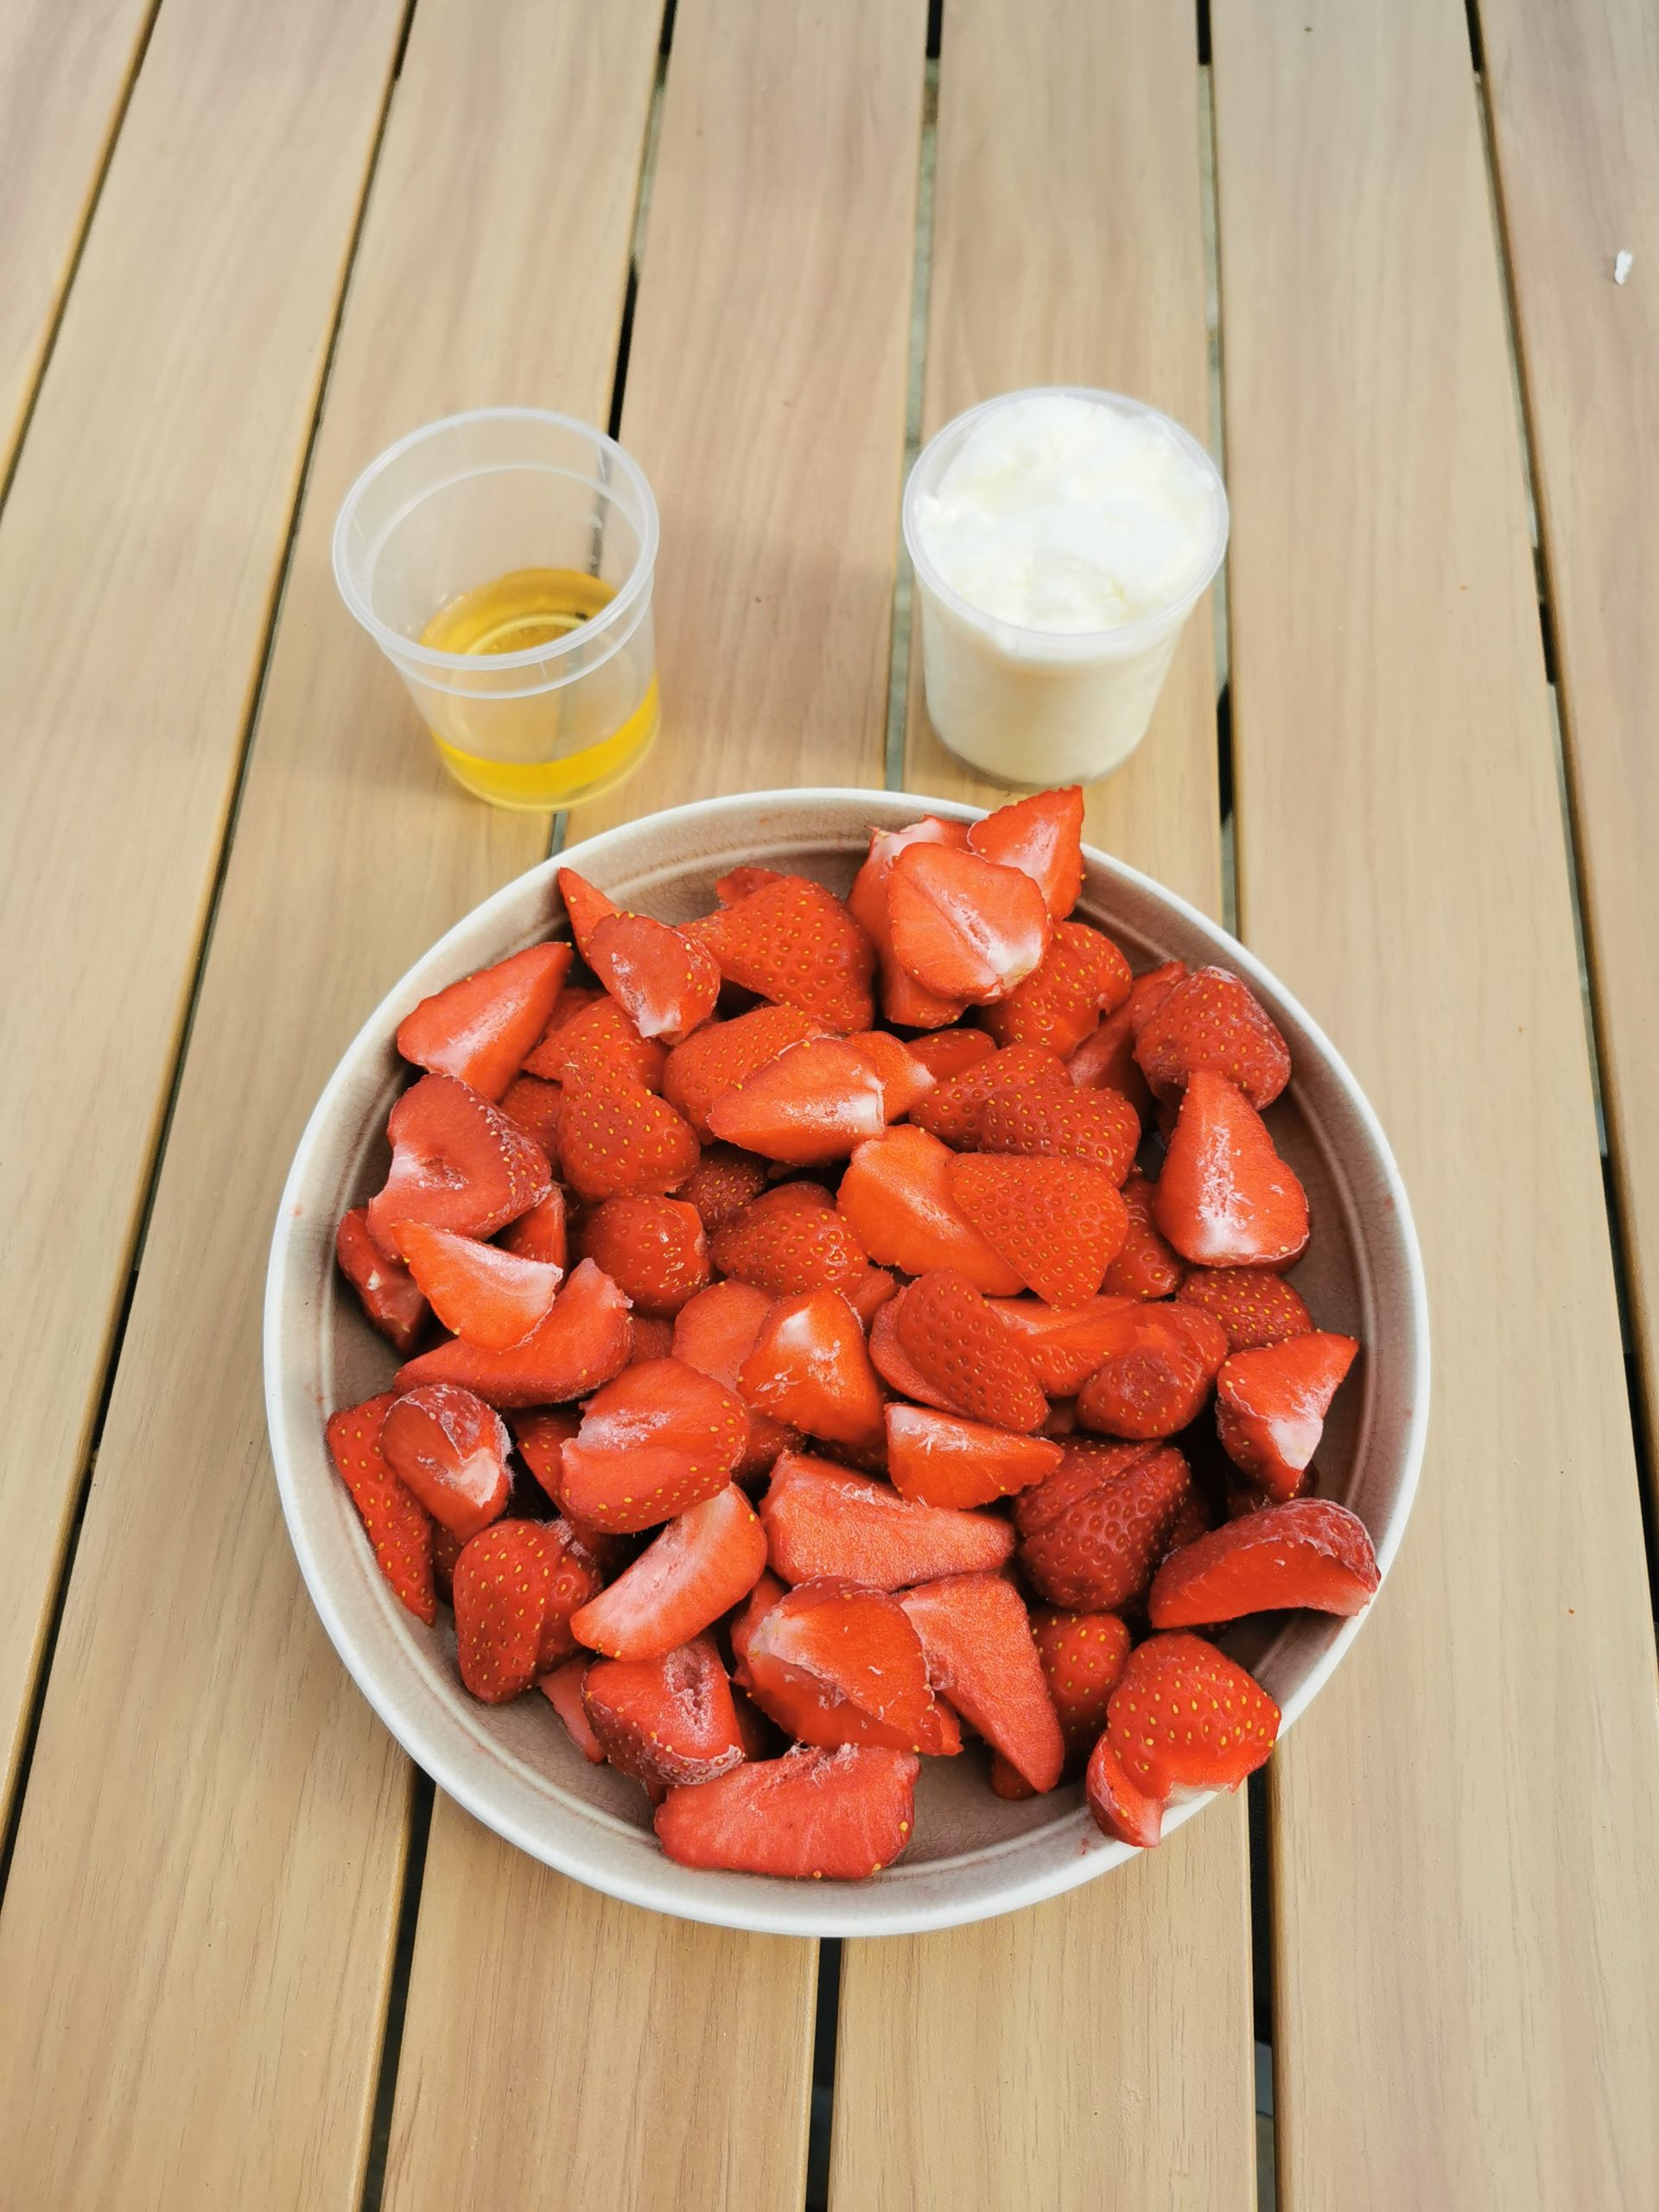 INGREDIENT GLACE FRAISE